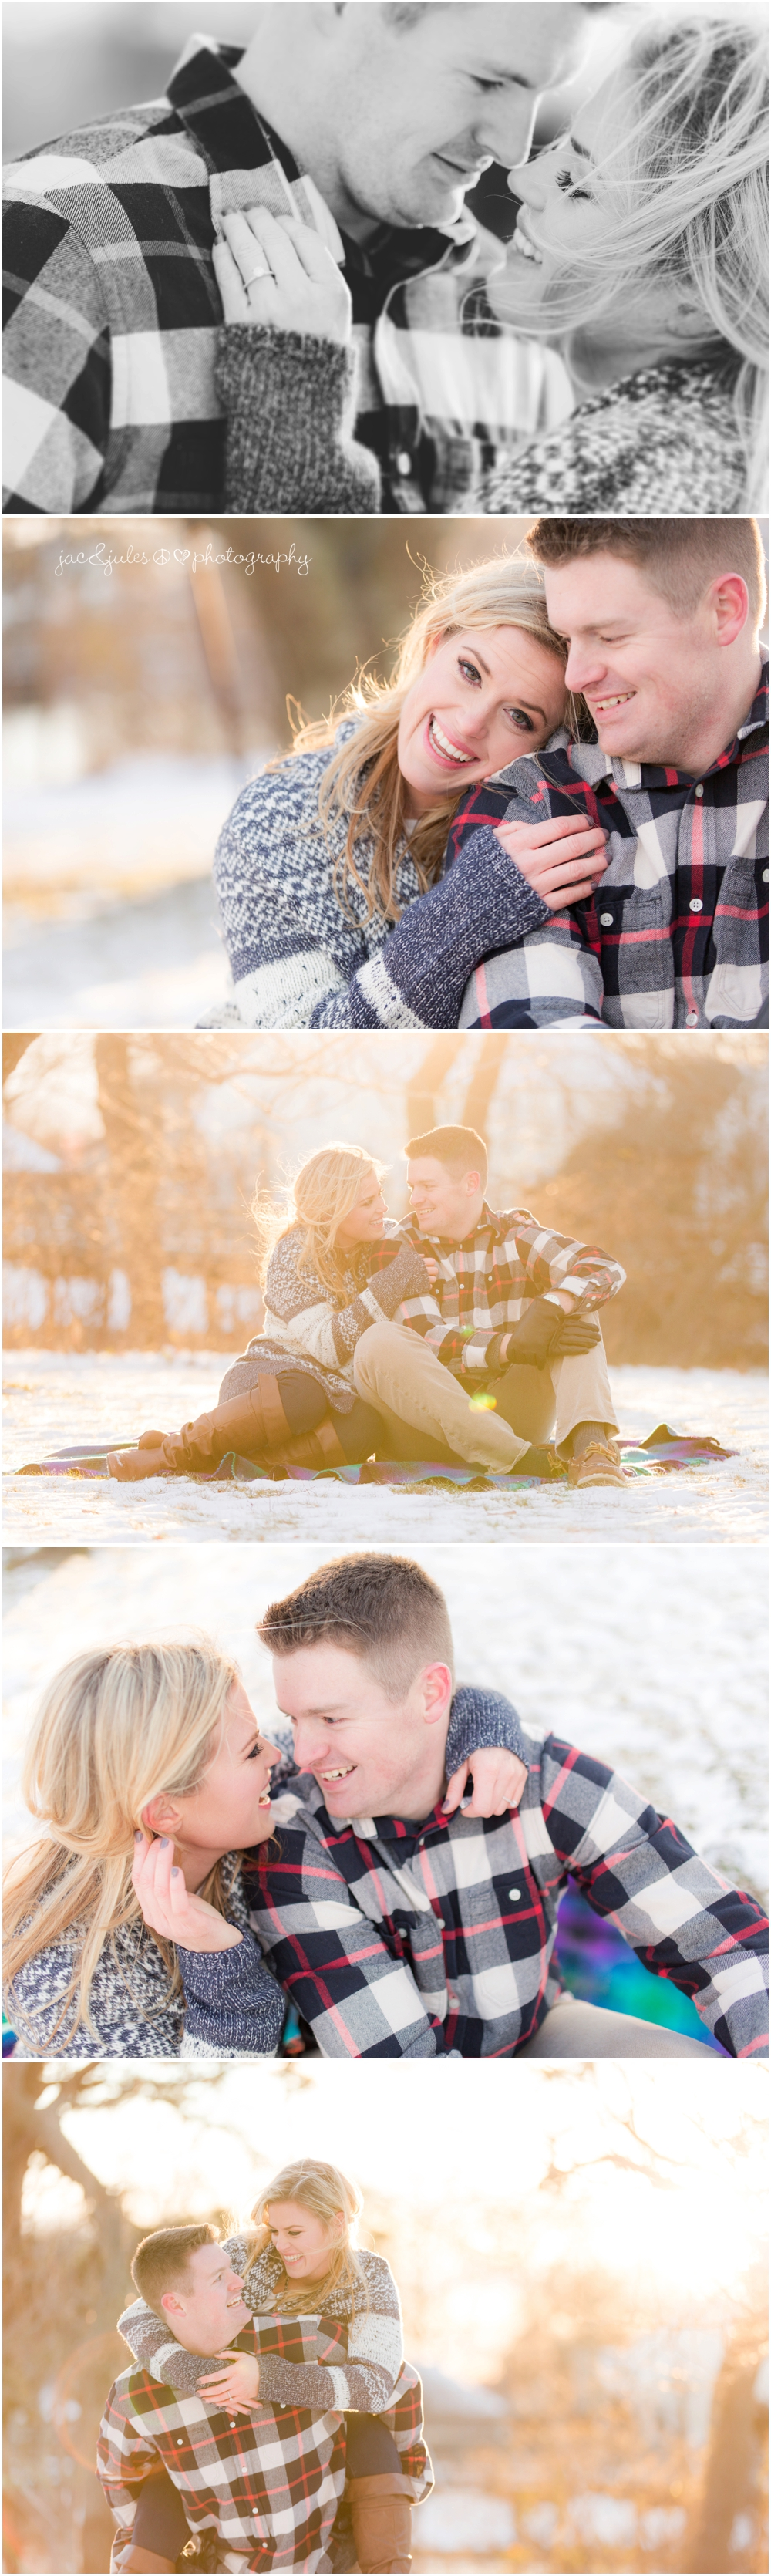 winter-engagement-photo-in-the-snow-spring-lake-nj-divine-park